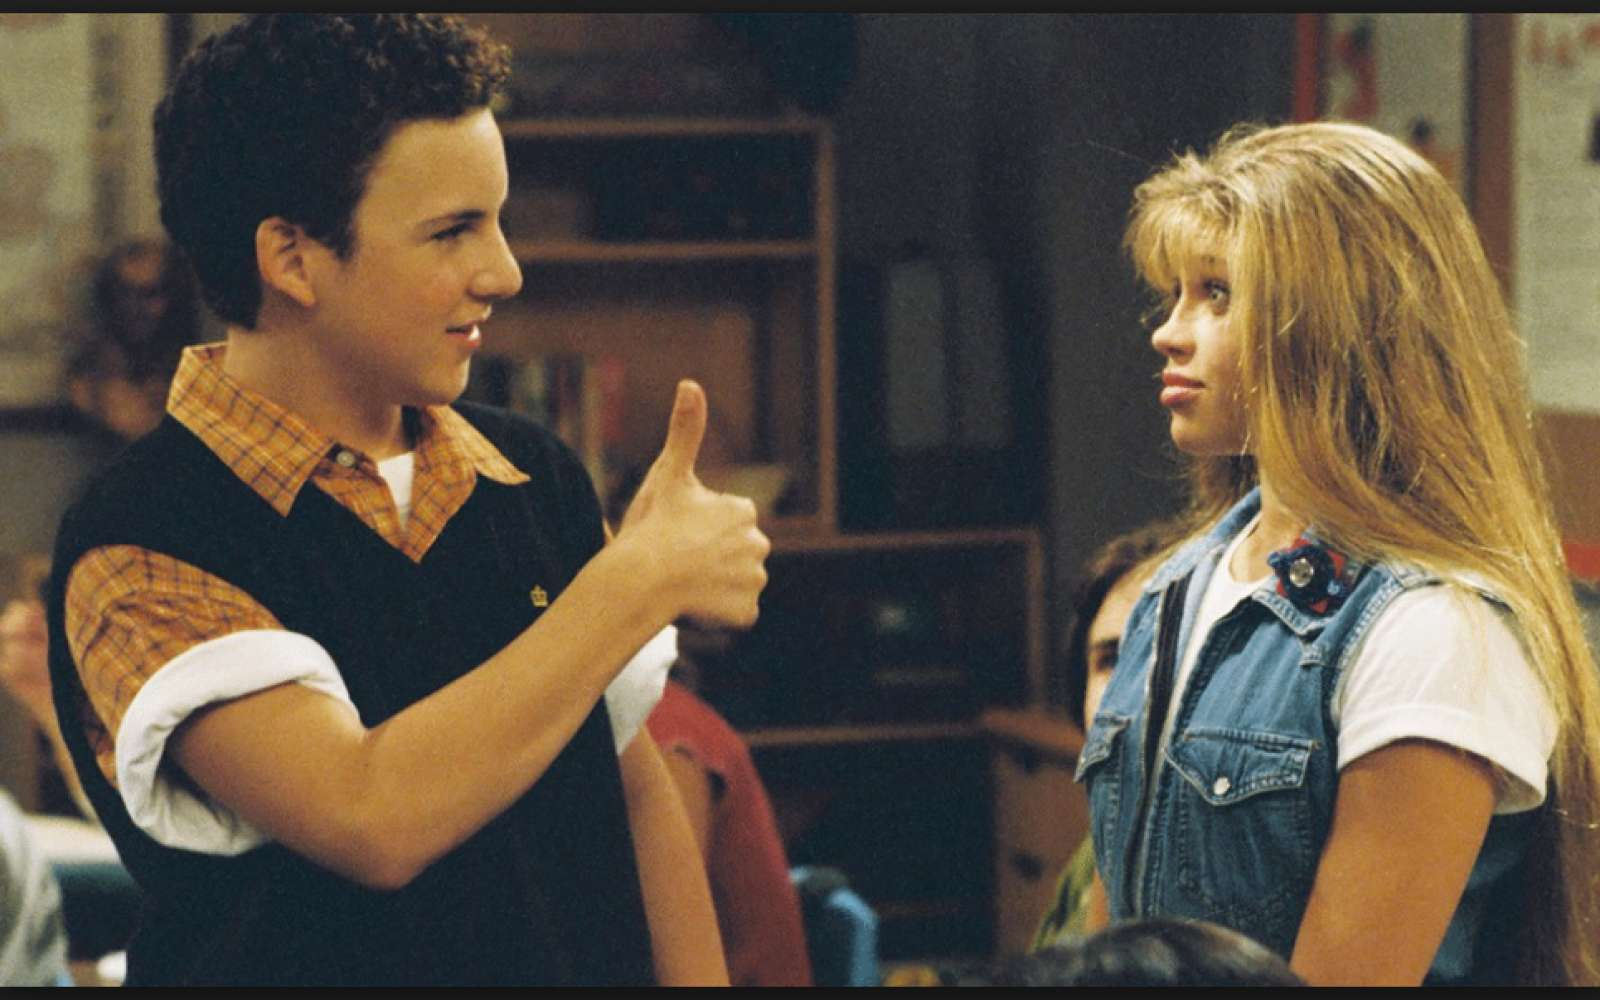 25 Of The Best 'Boy Meets World' Quotes That Pulled At Every Heartstring